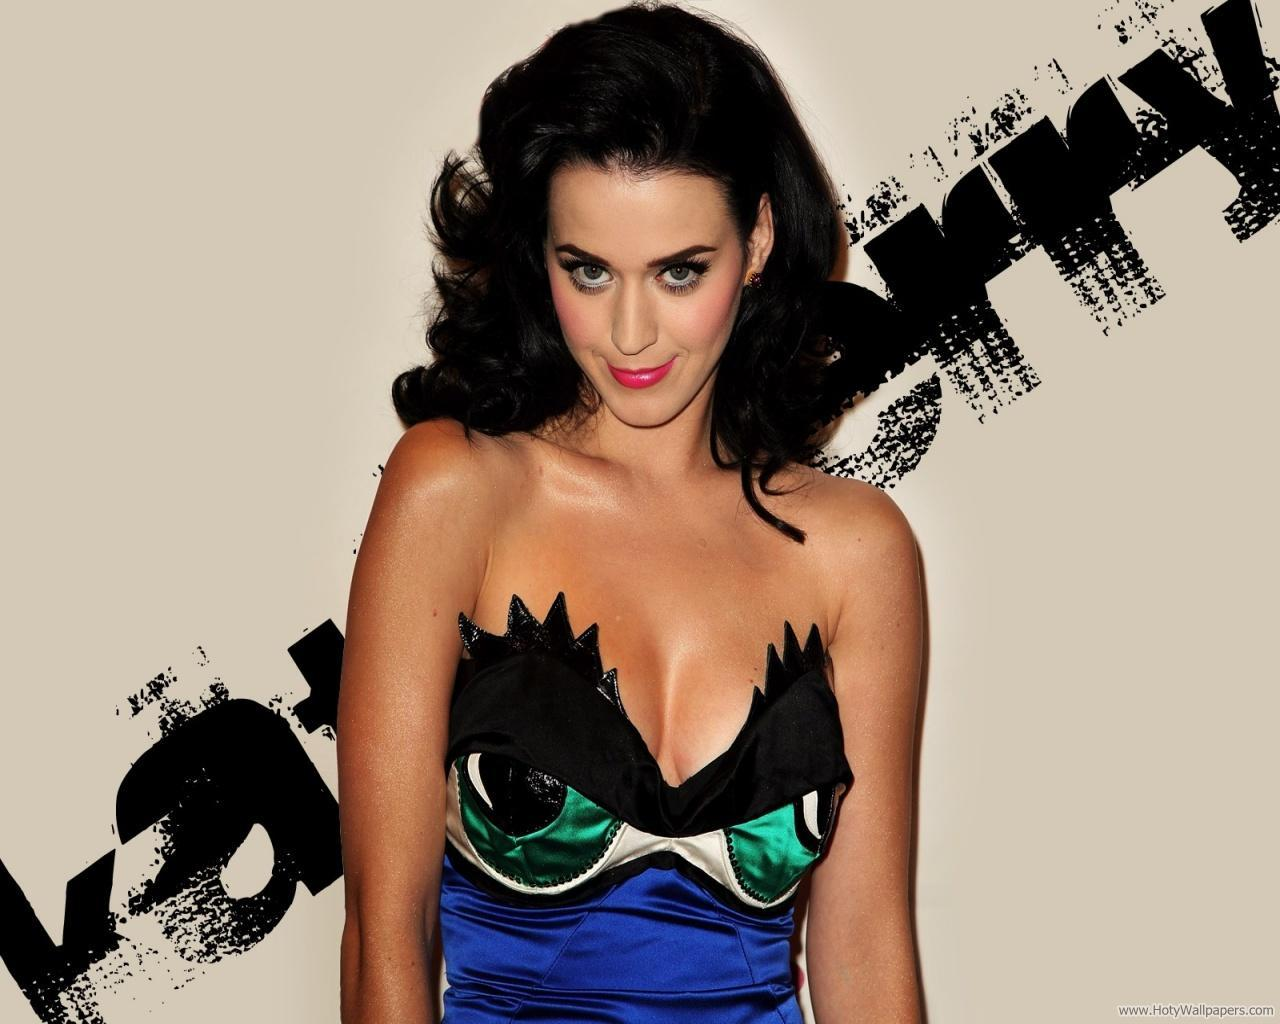 Katy Perry: Katy Perry Glamorous Wallpapers